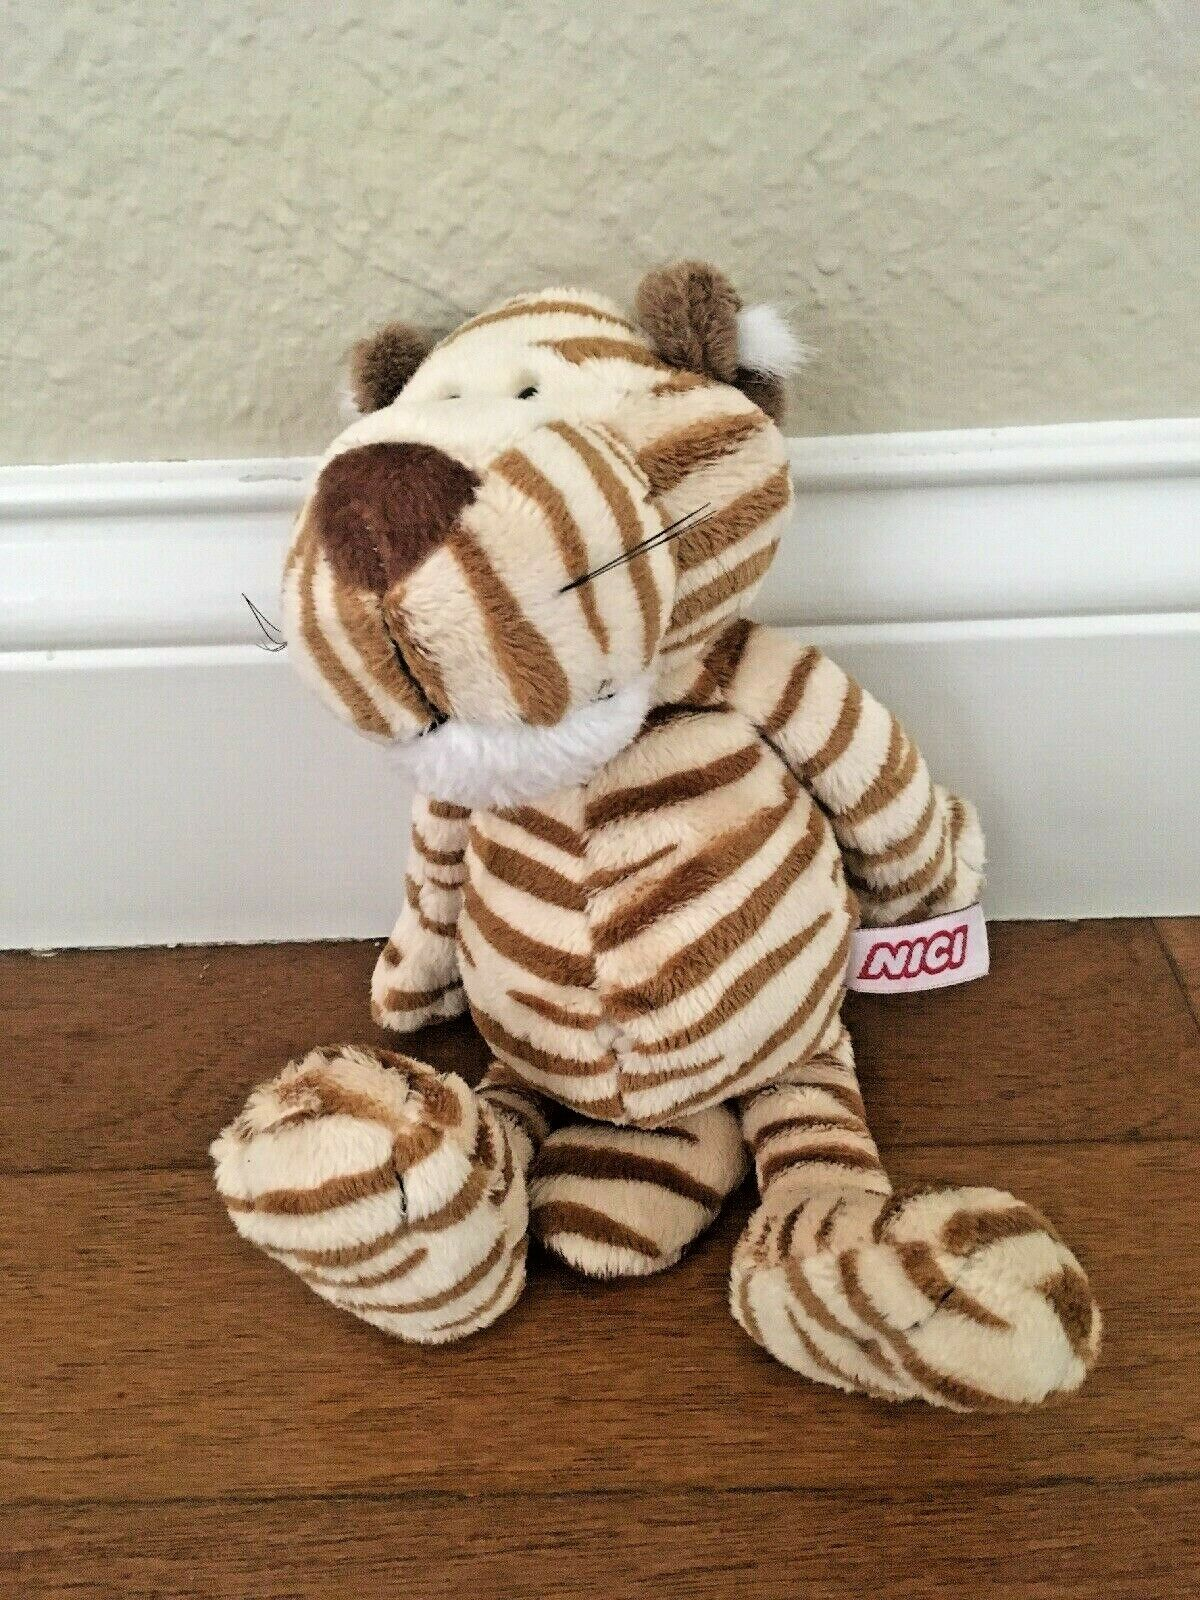 NWT NICI Germany Plush Dangling Tiger- Rare